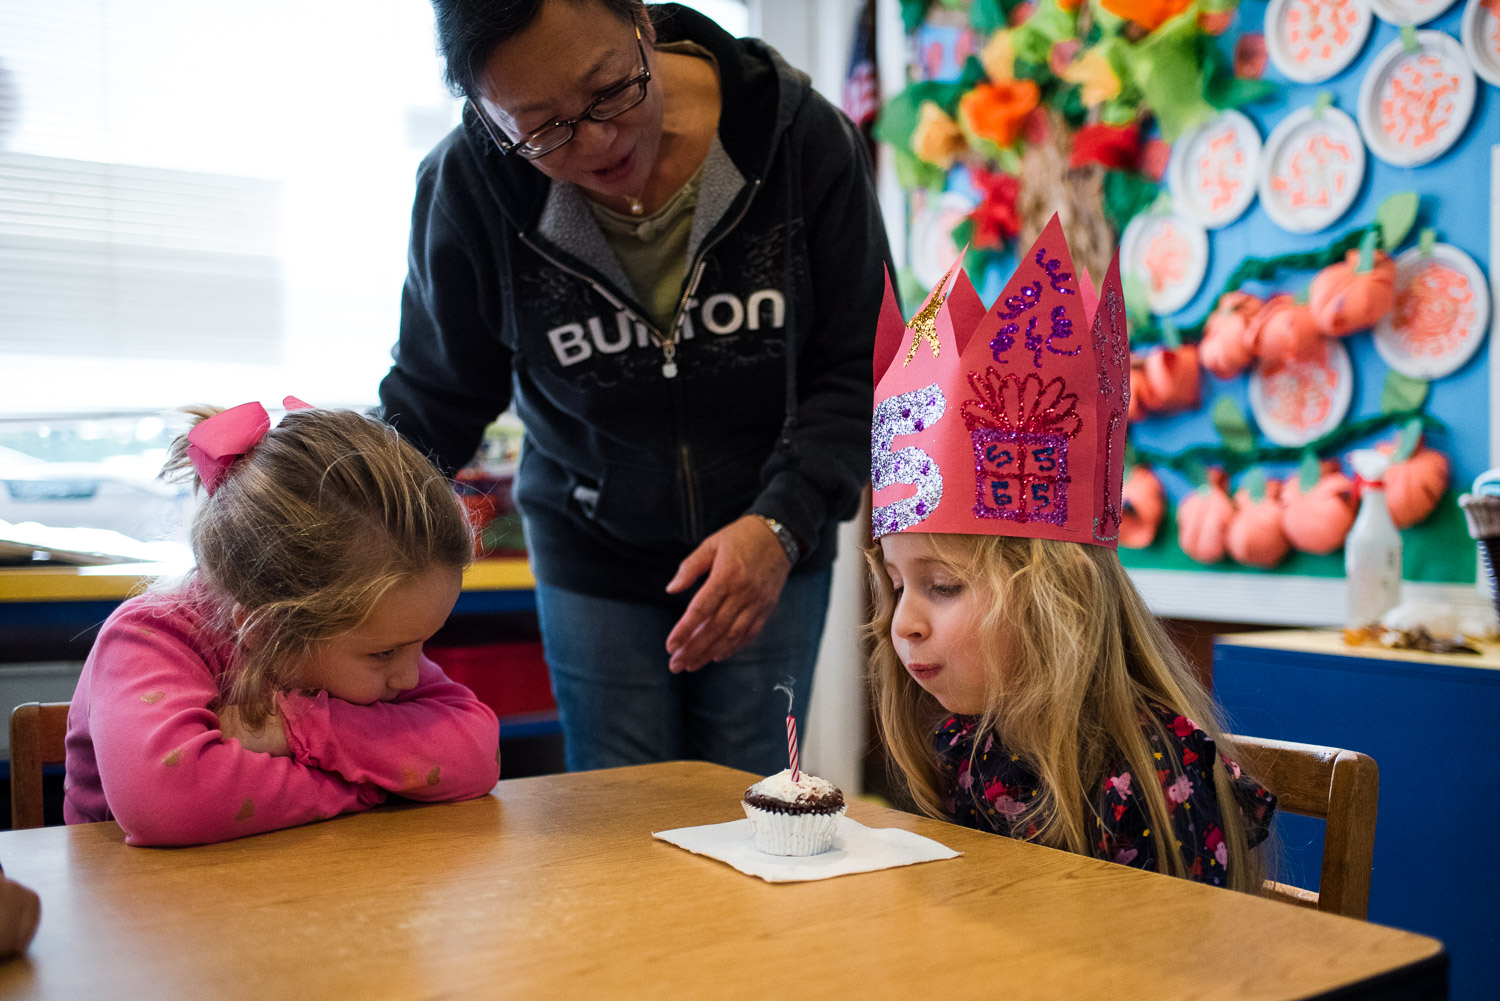 A little girl blowing out the candle on her birthday cupcake.